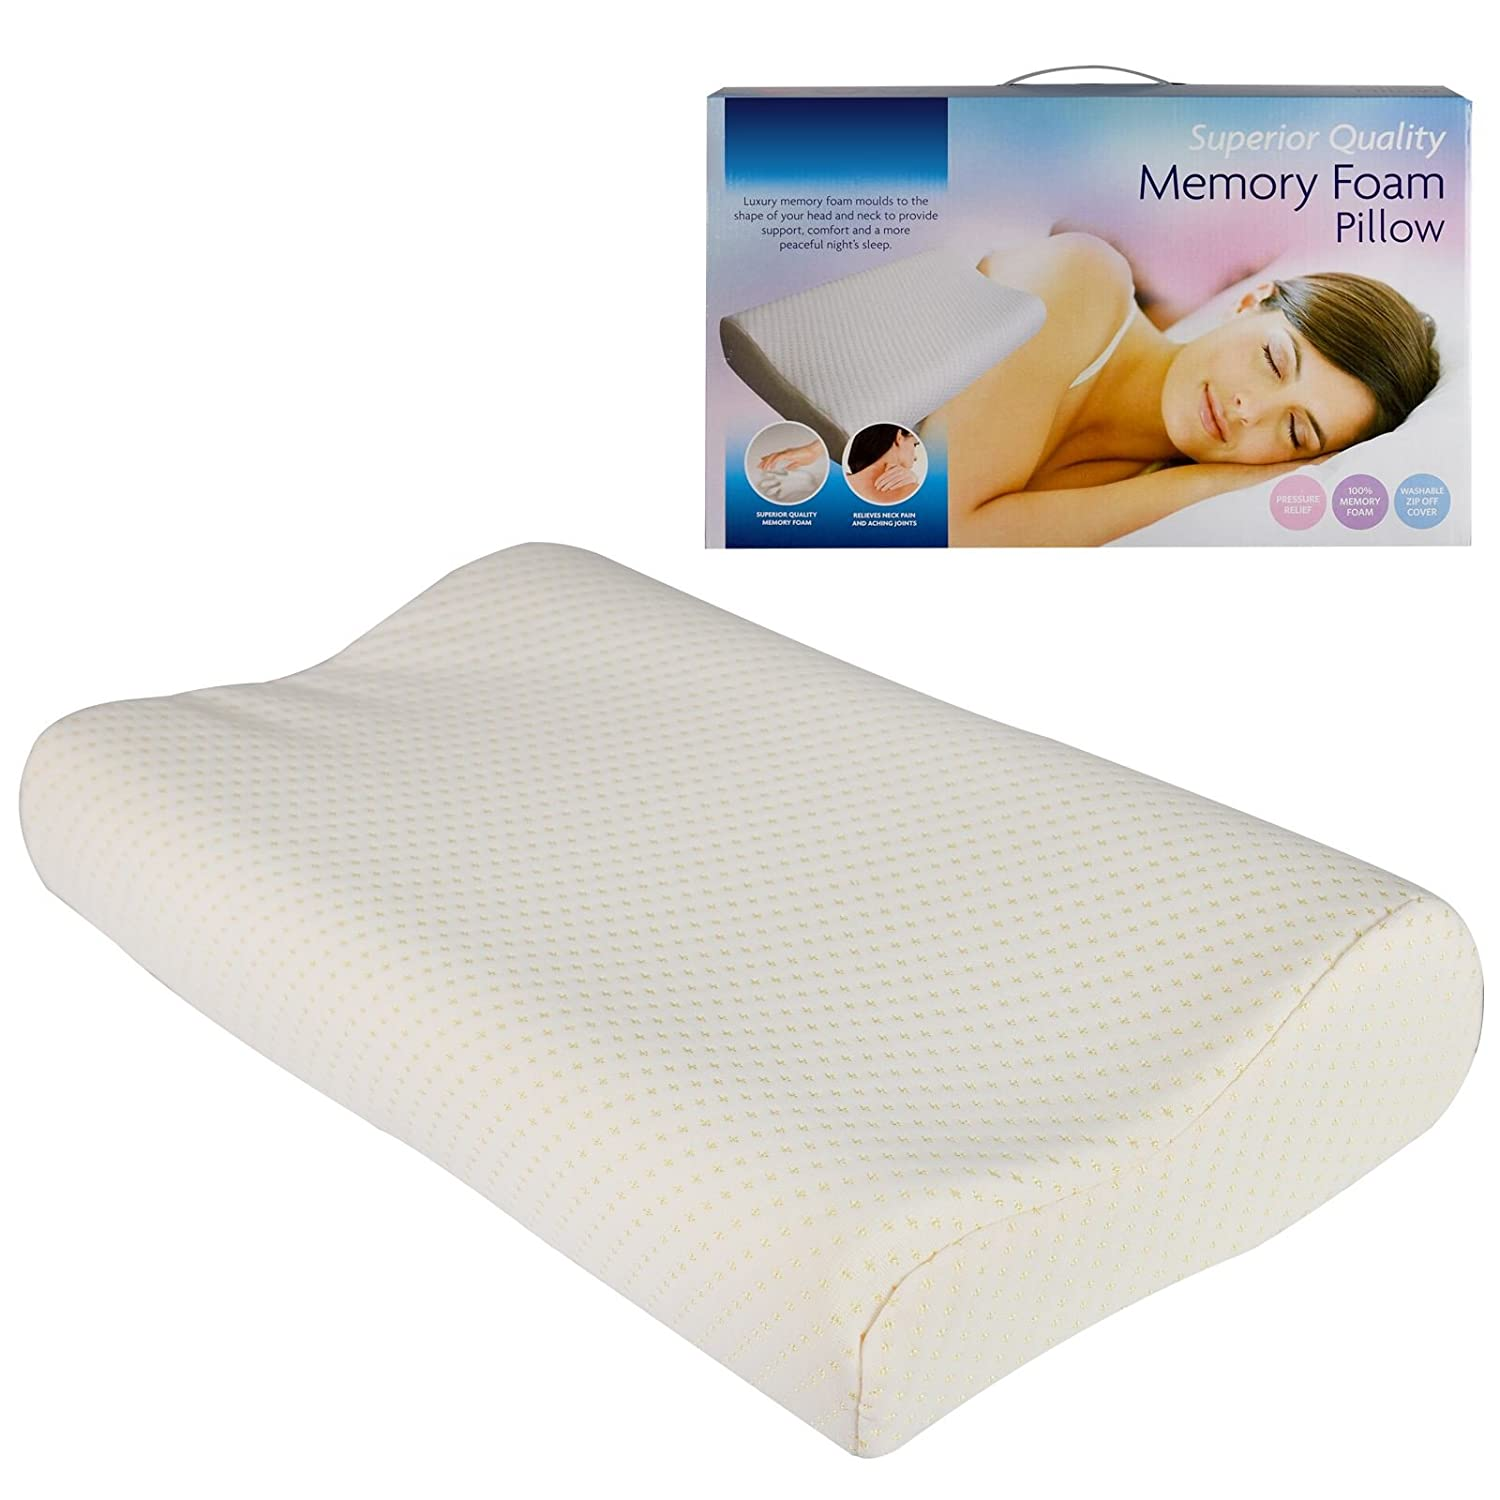 2 x Contour Memory Foam Bamboo Pillow Head Neck Firm Support Orthopaedic